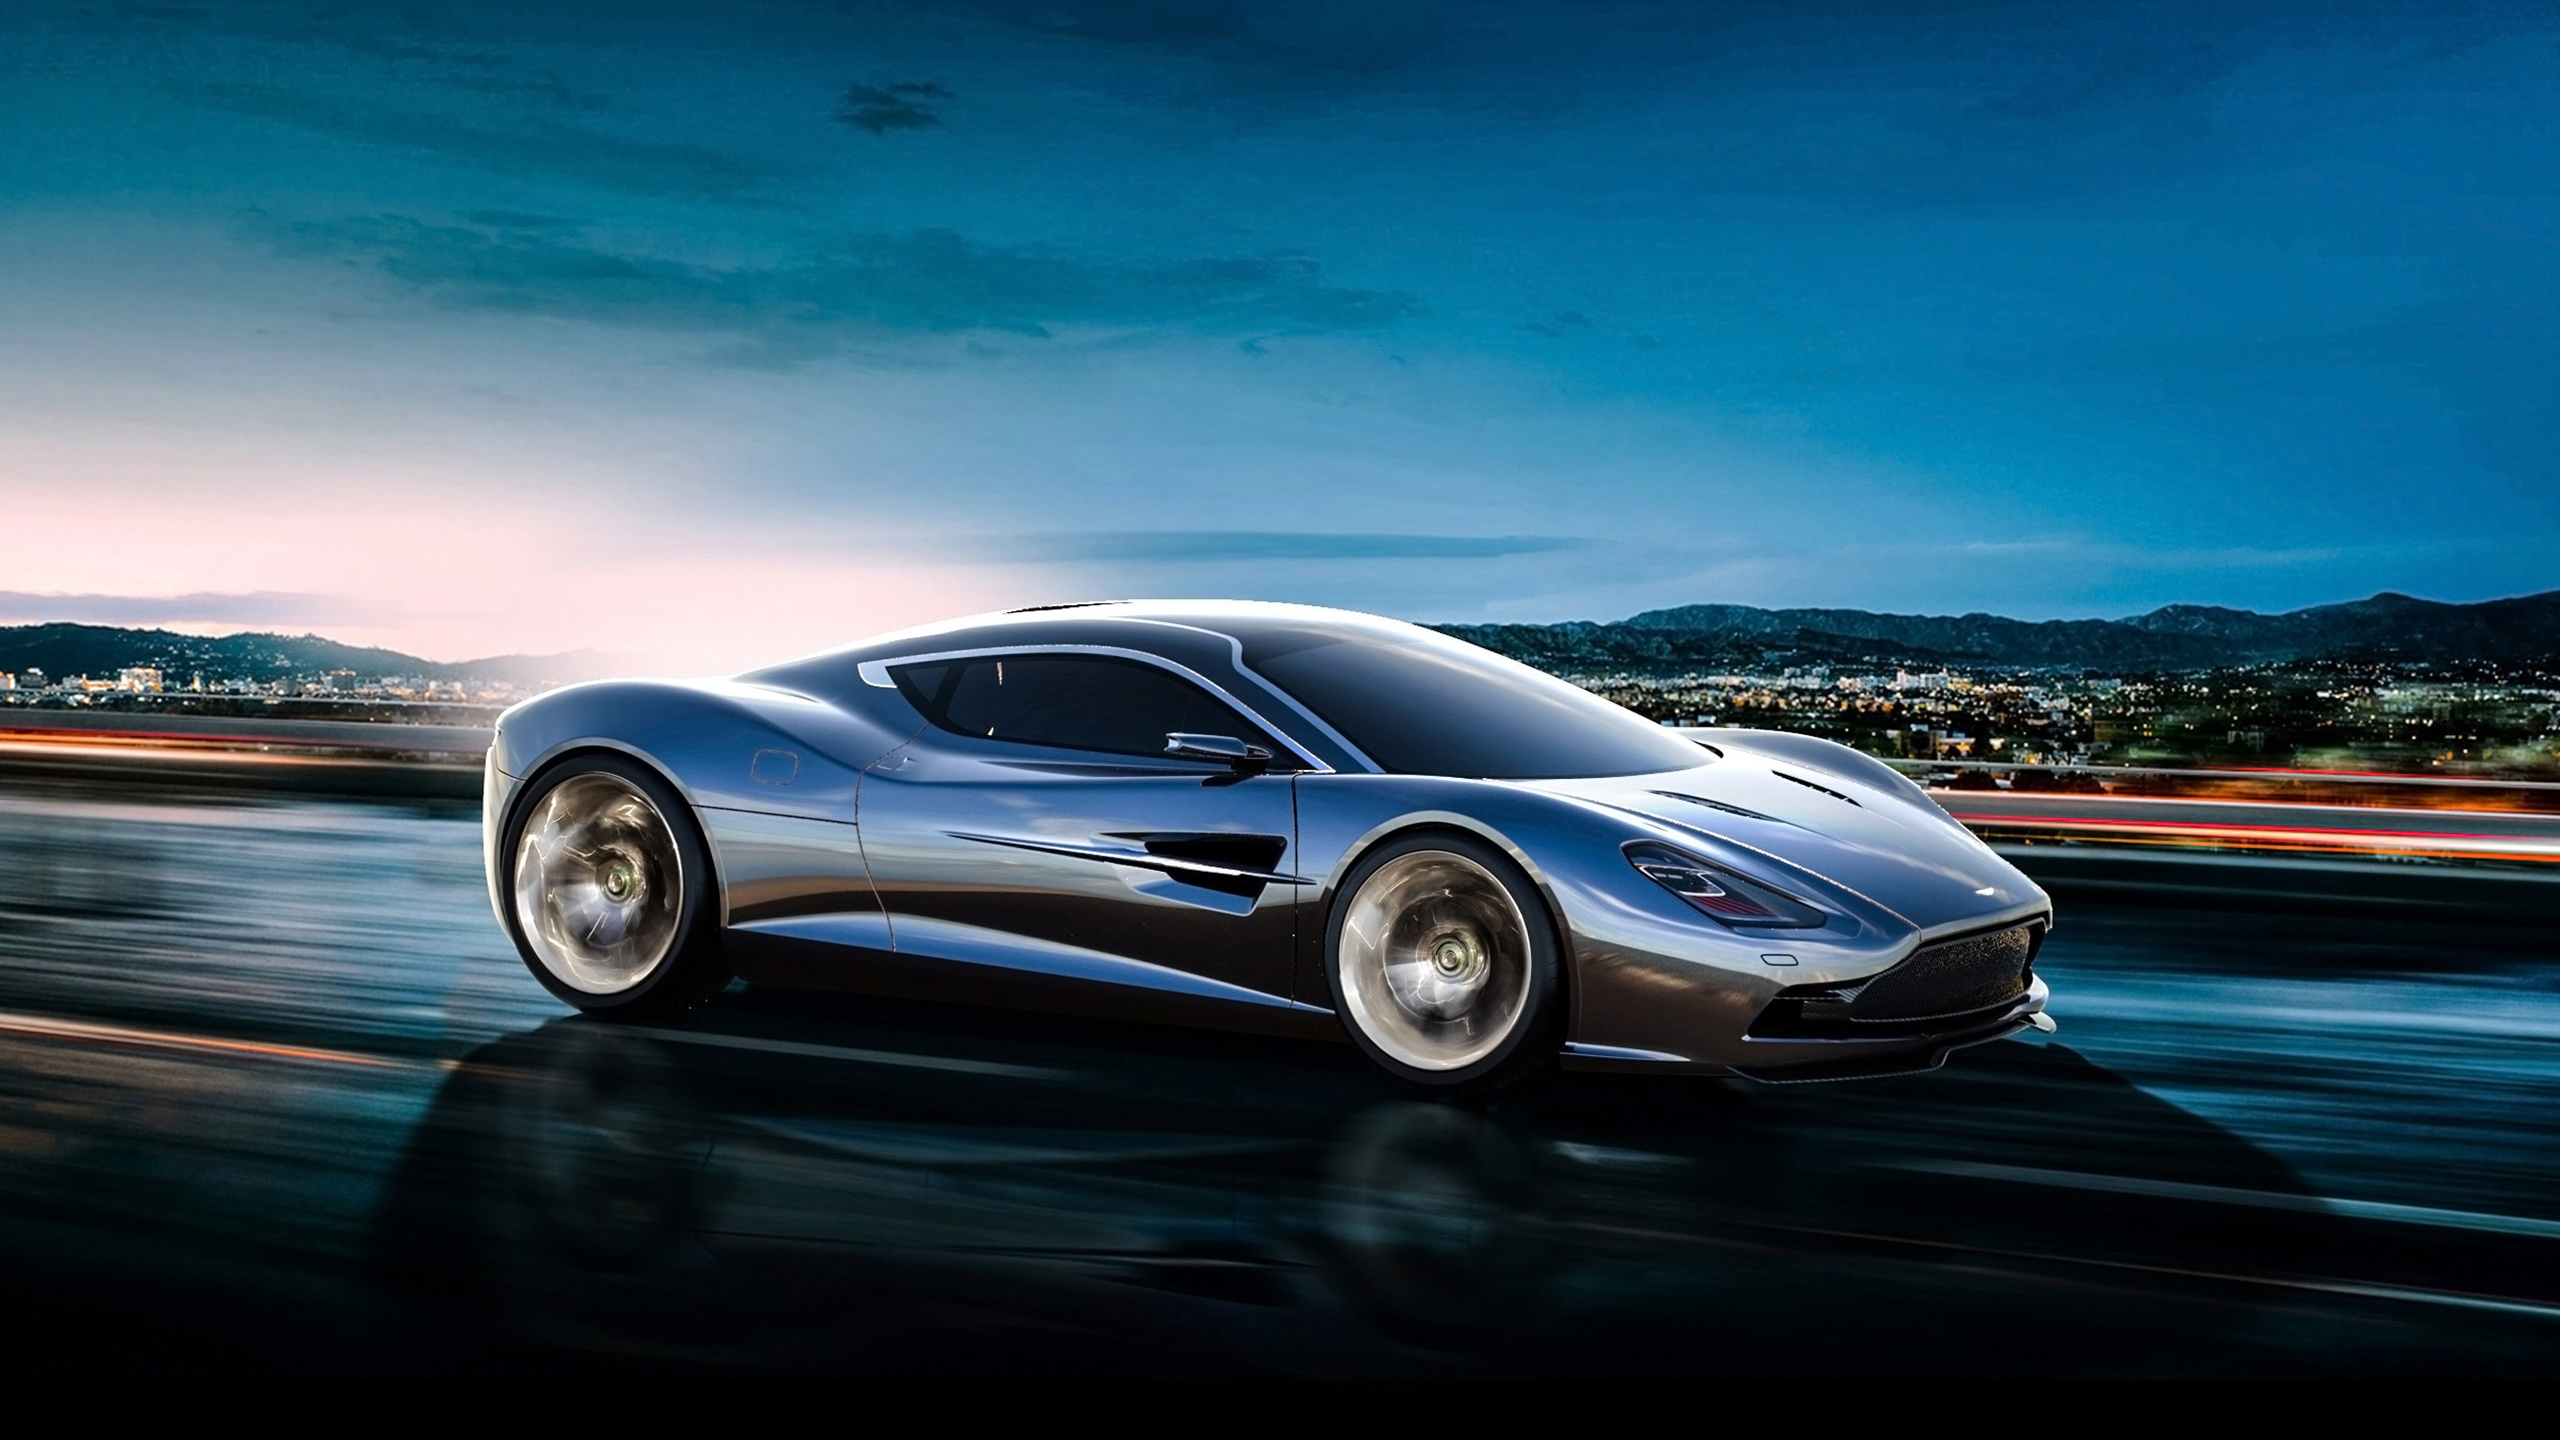 Luxury Vehicle: 50 Super Sports Car Wallpapers That'll Blow Your Desktop Away